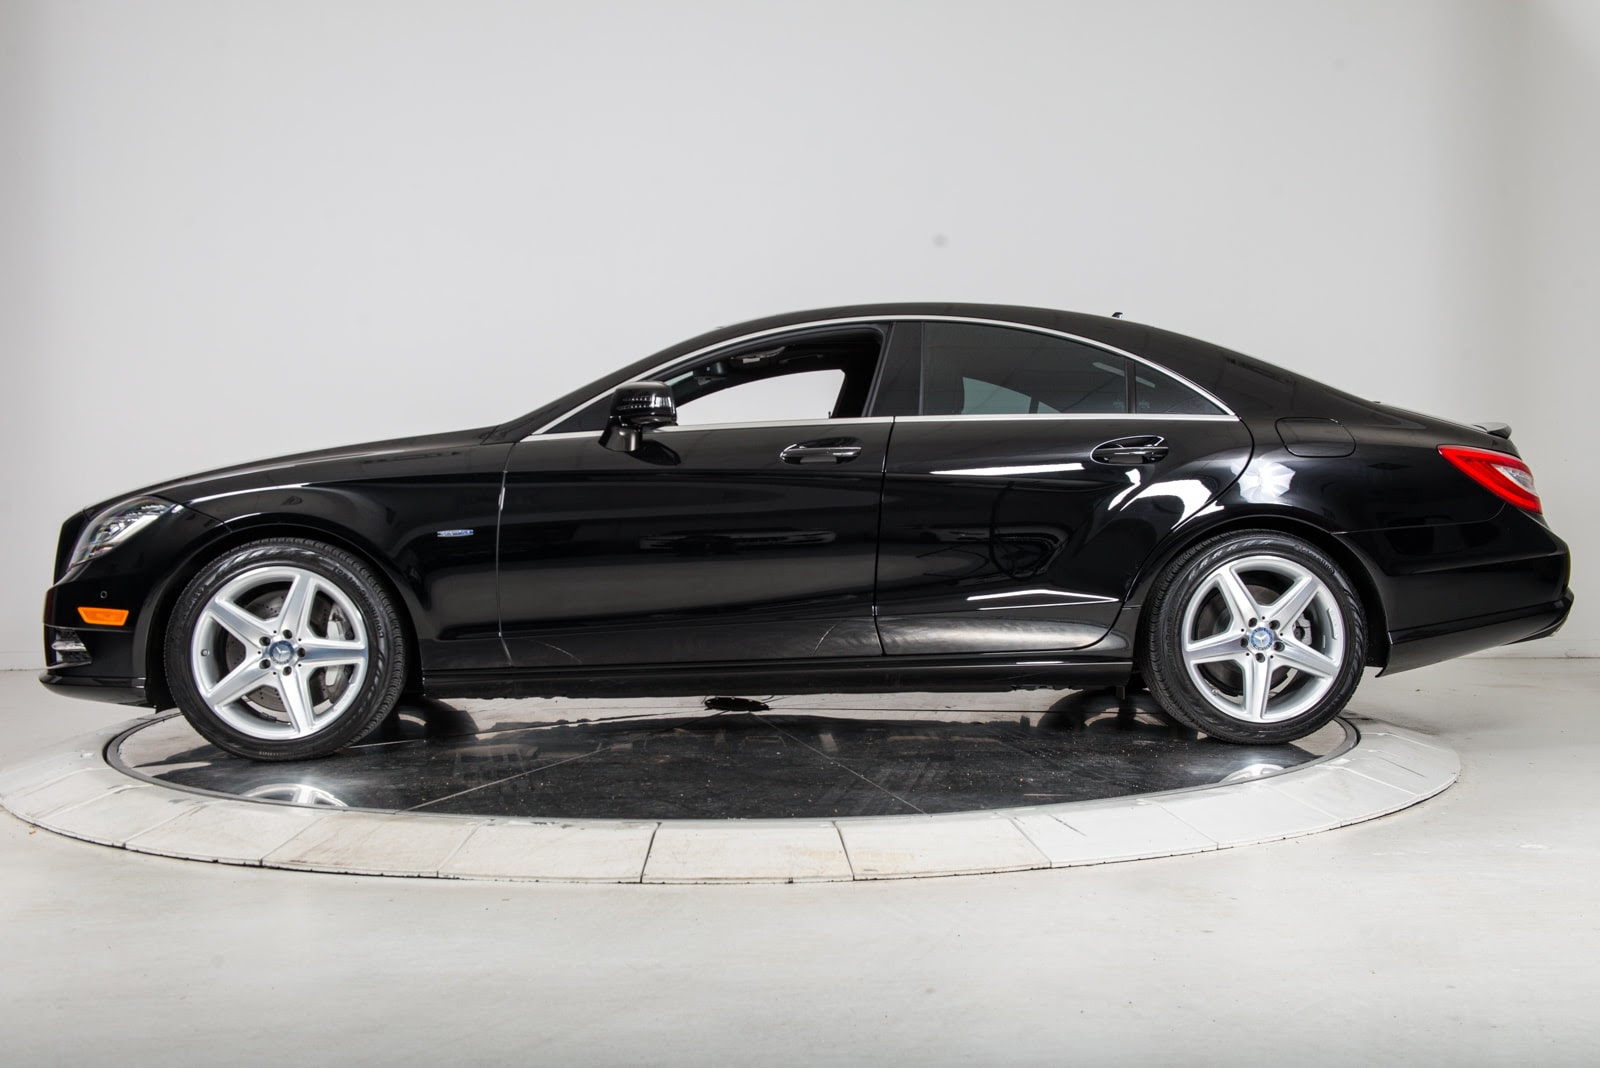 Used 2012 MERCEDES-BENZ CLS550 4MATIC For Sale | Plainview ...